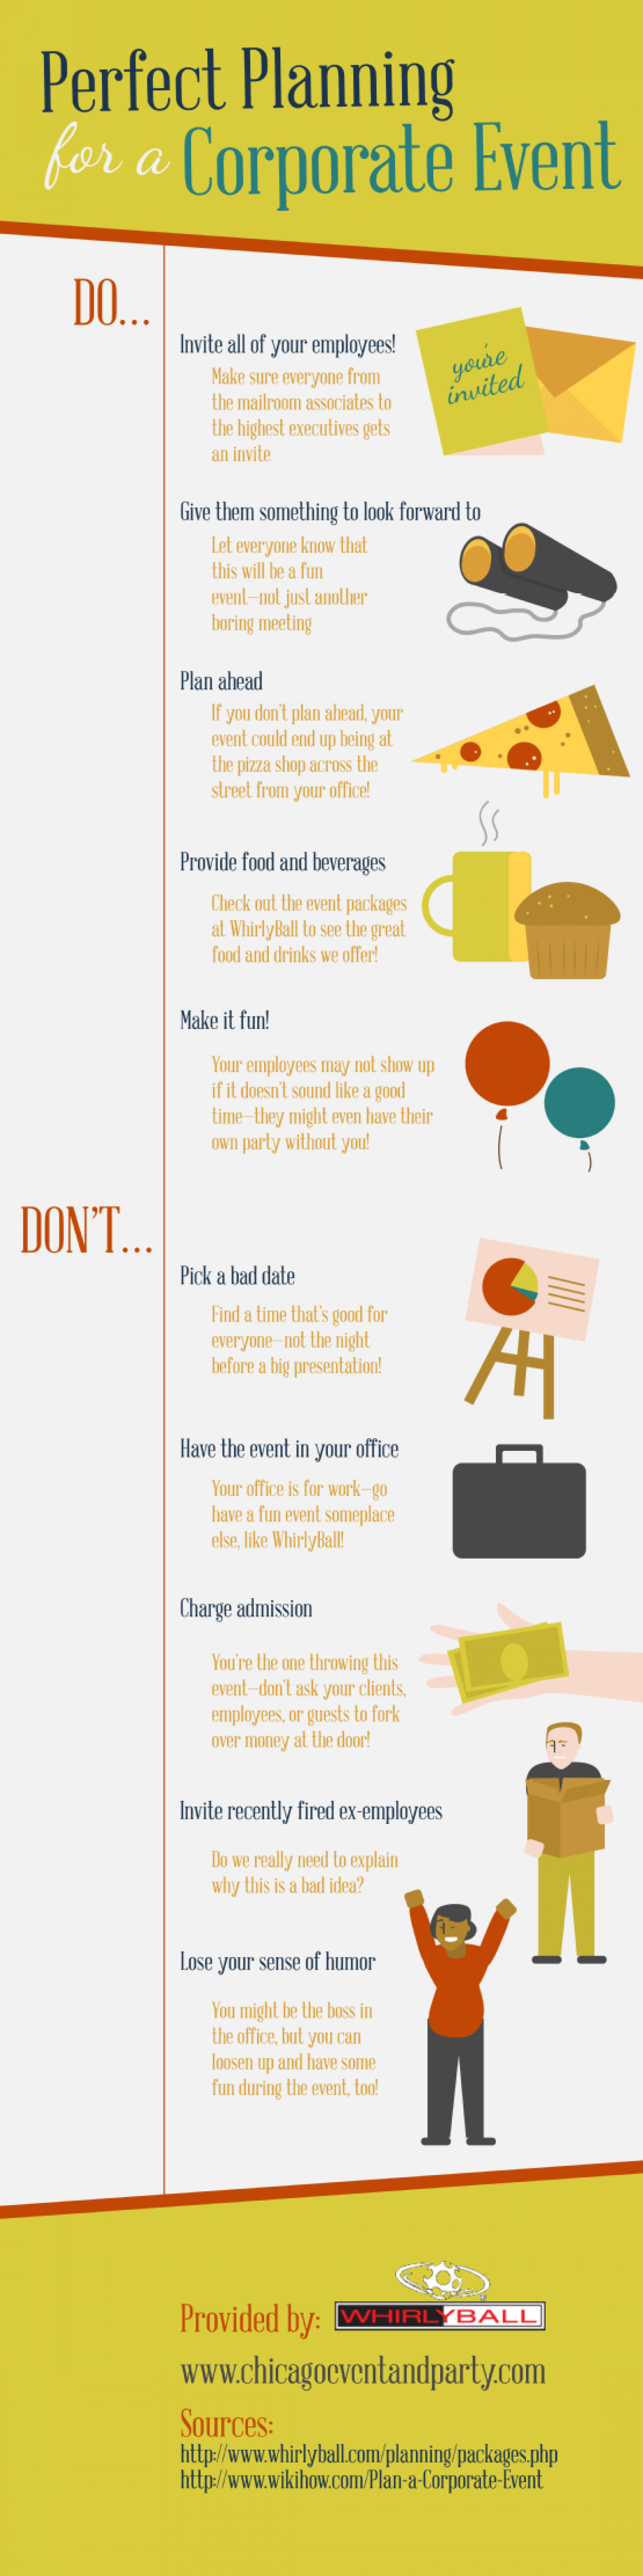 Perfect Planning for a Corporate Event Infographic